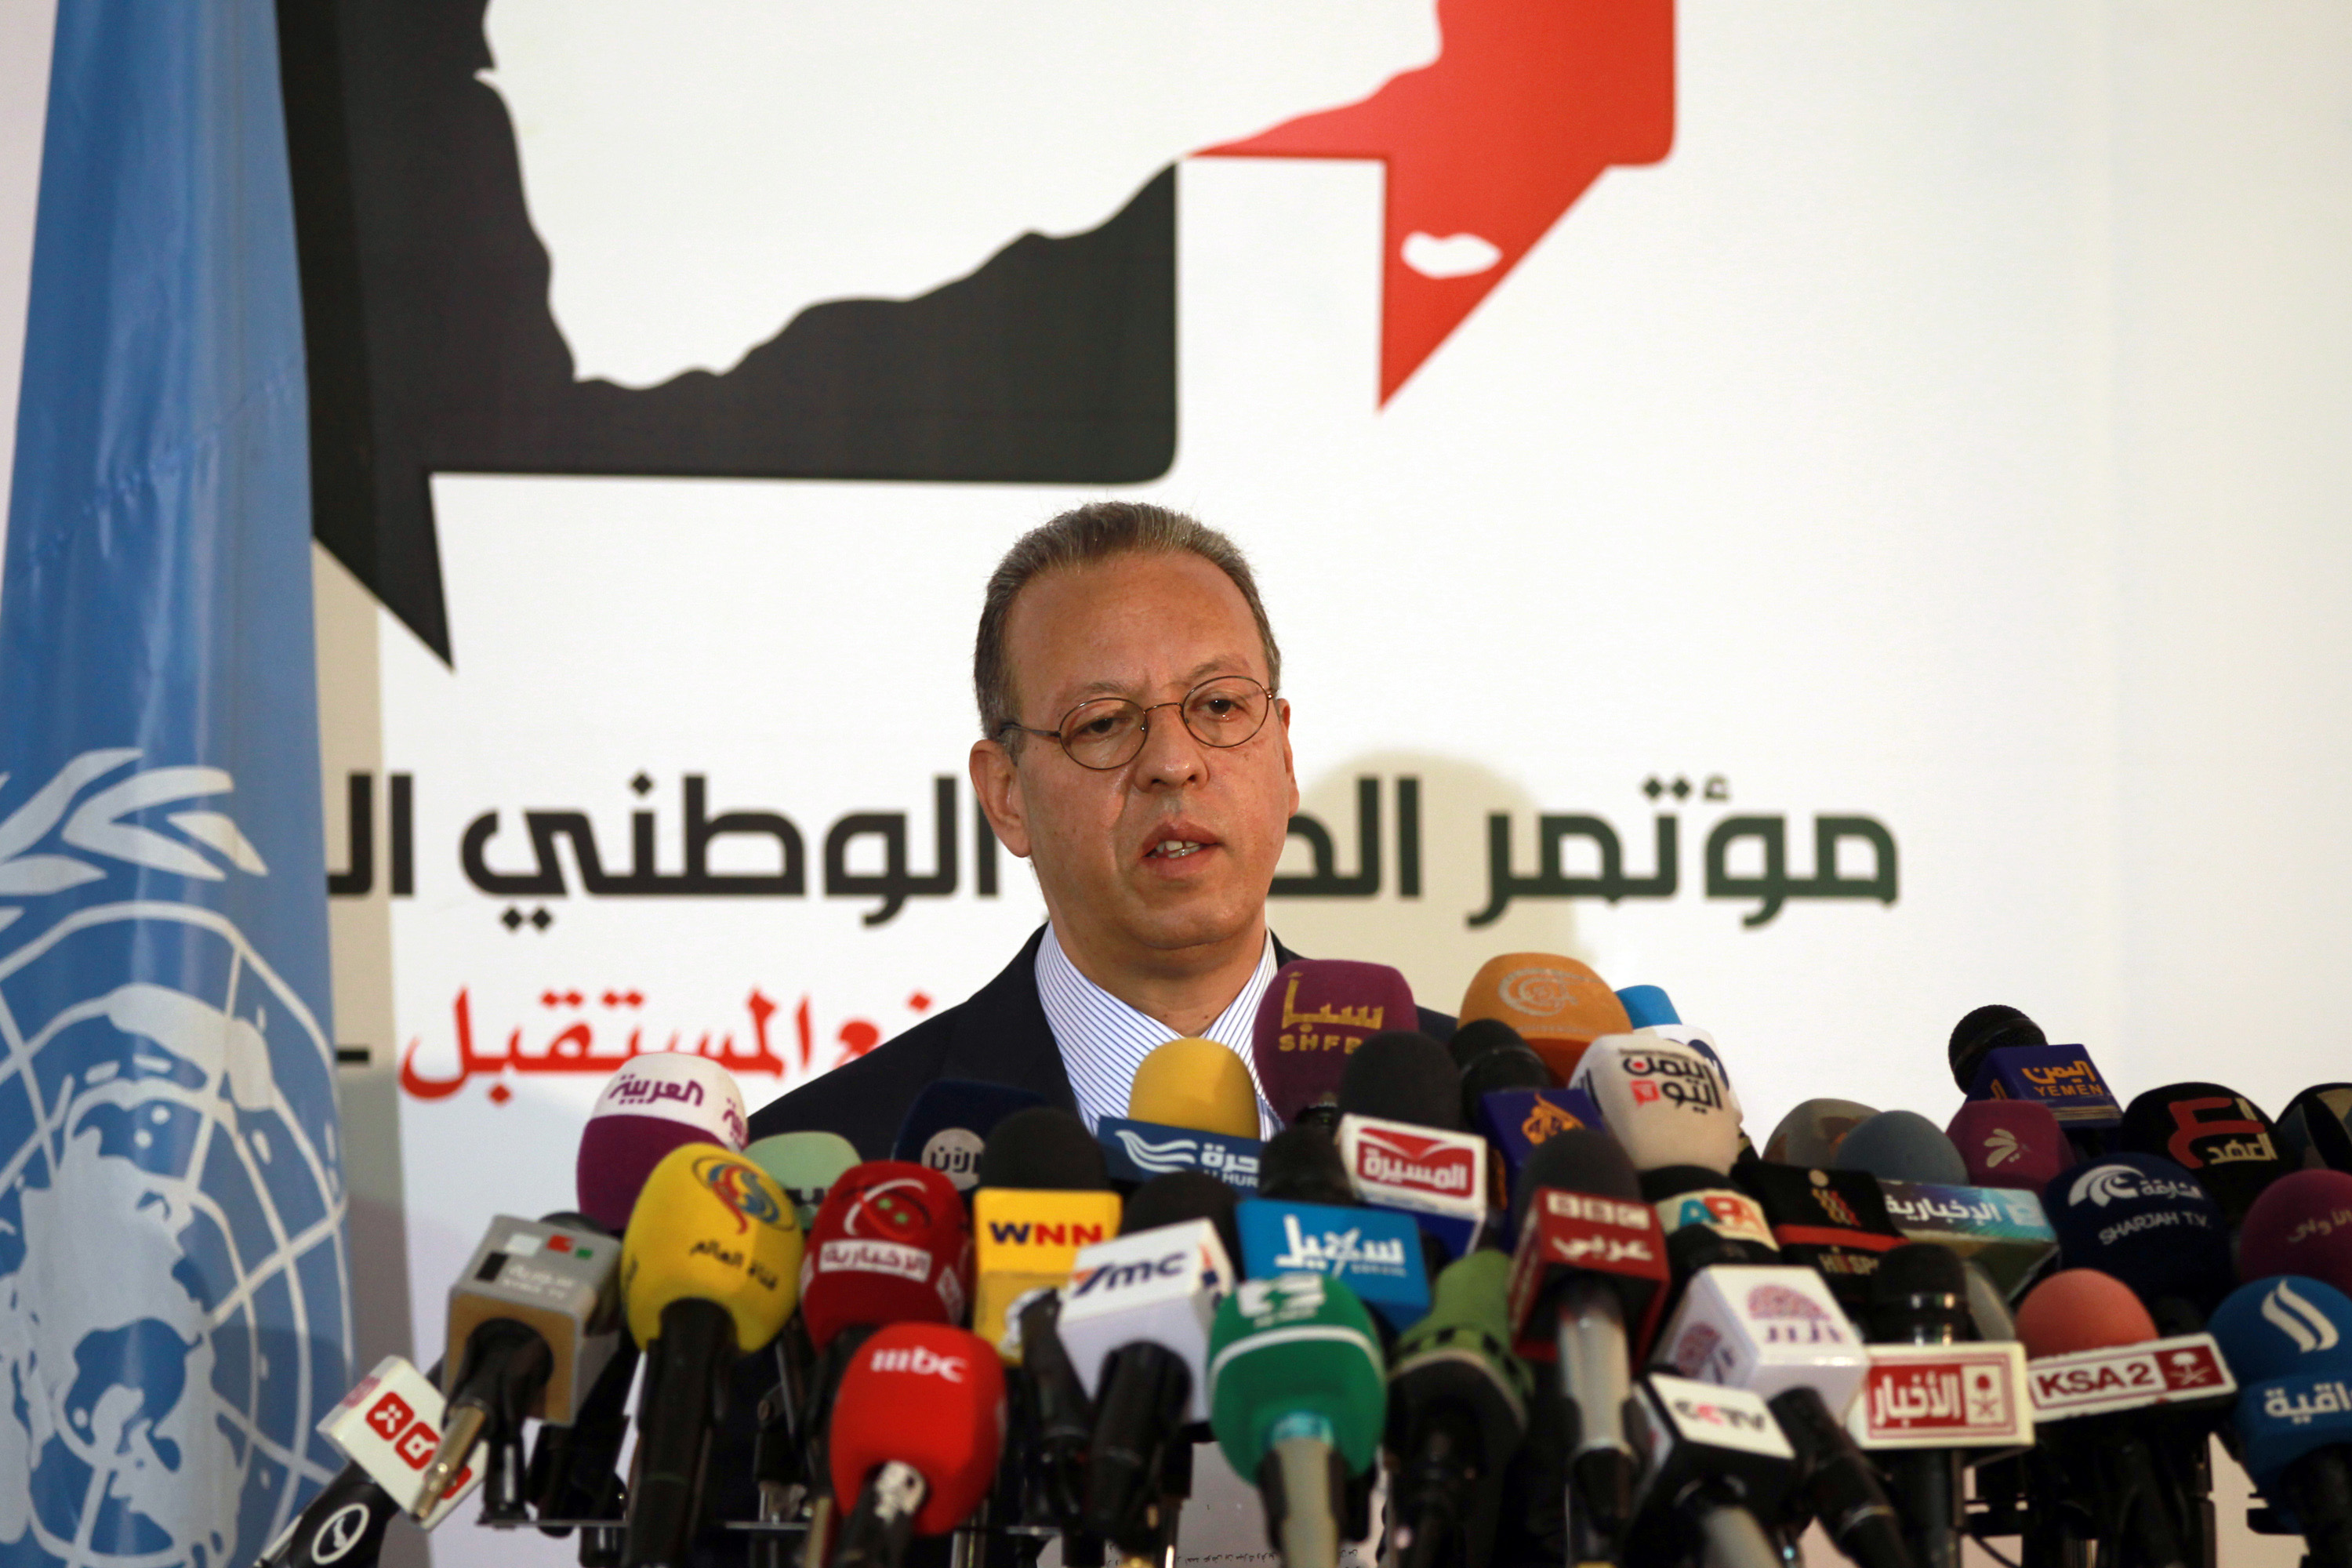 Jamal Benomar, UN envoy to Yemen, speaks during a press conference conference in Sanaa December 24, 2013.